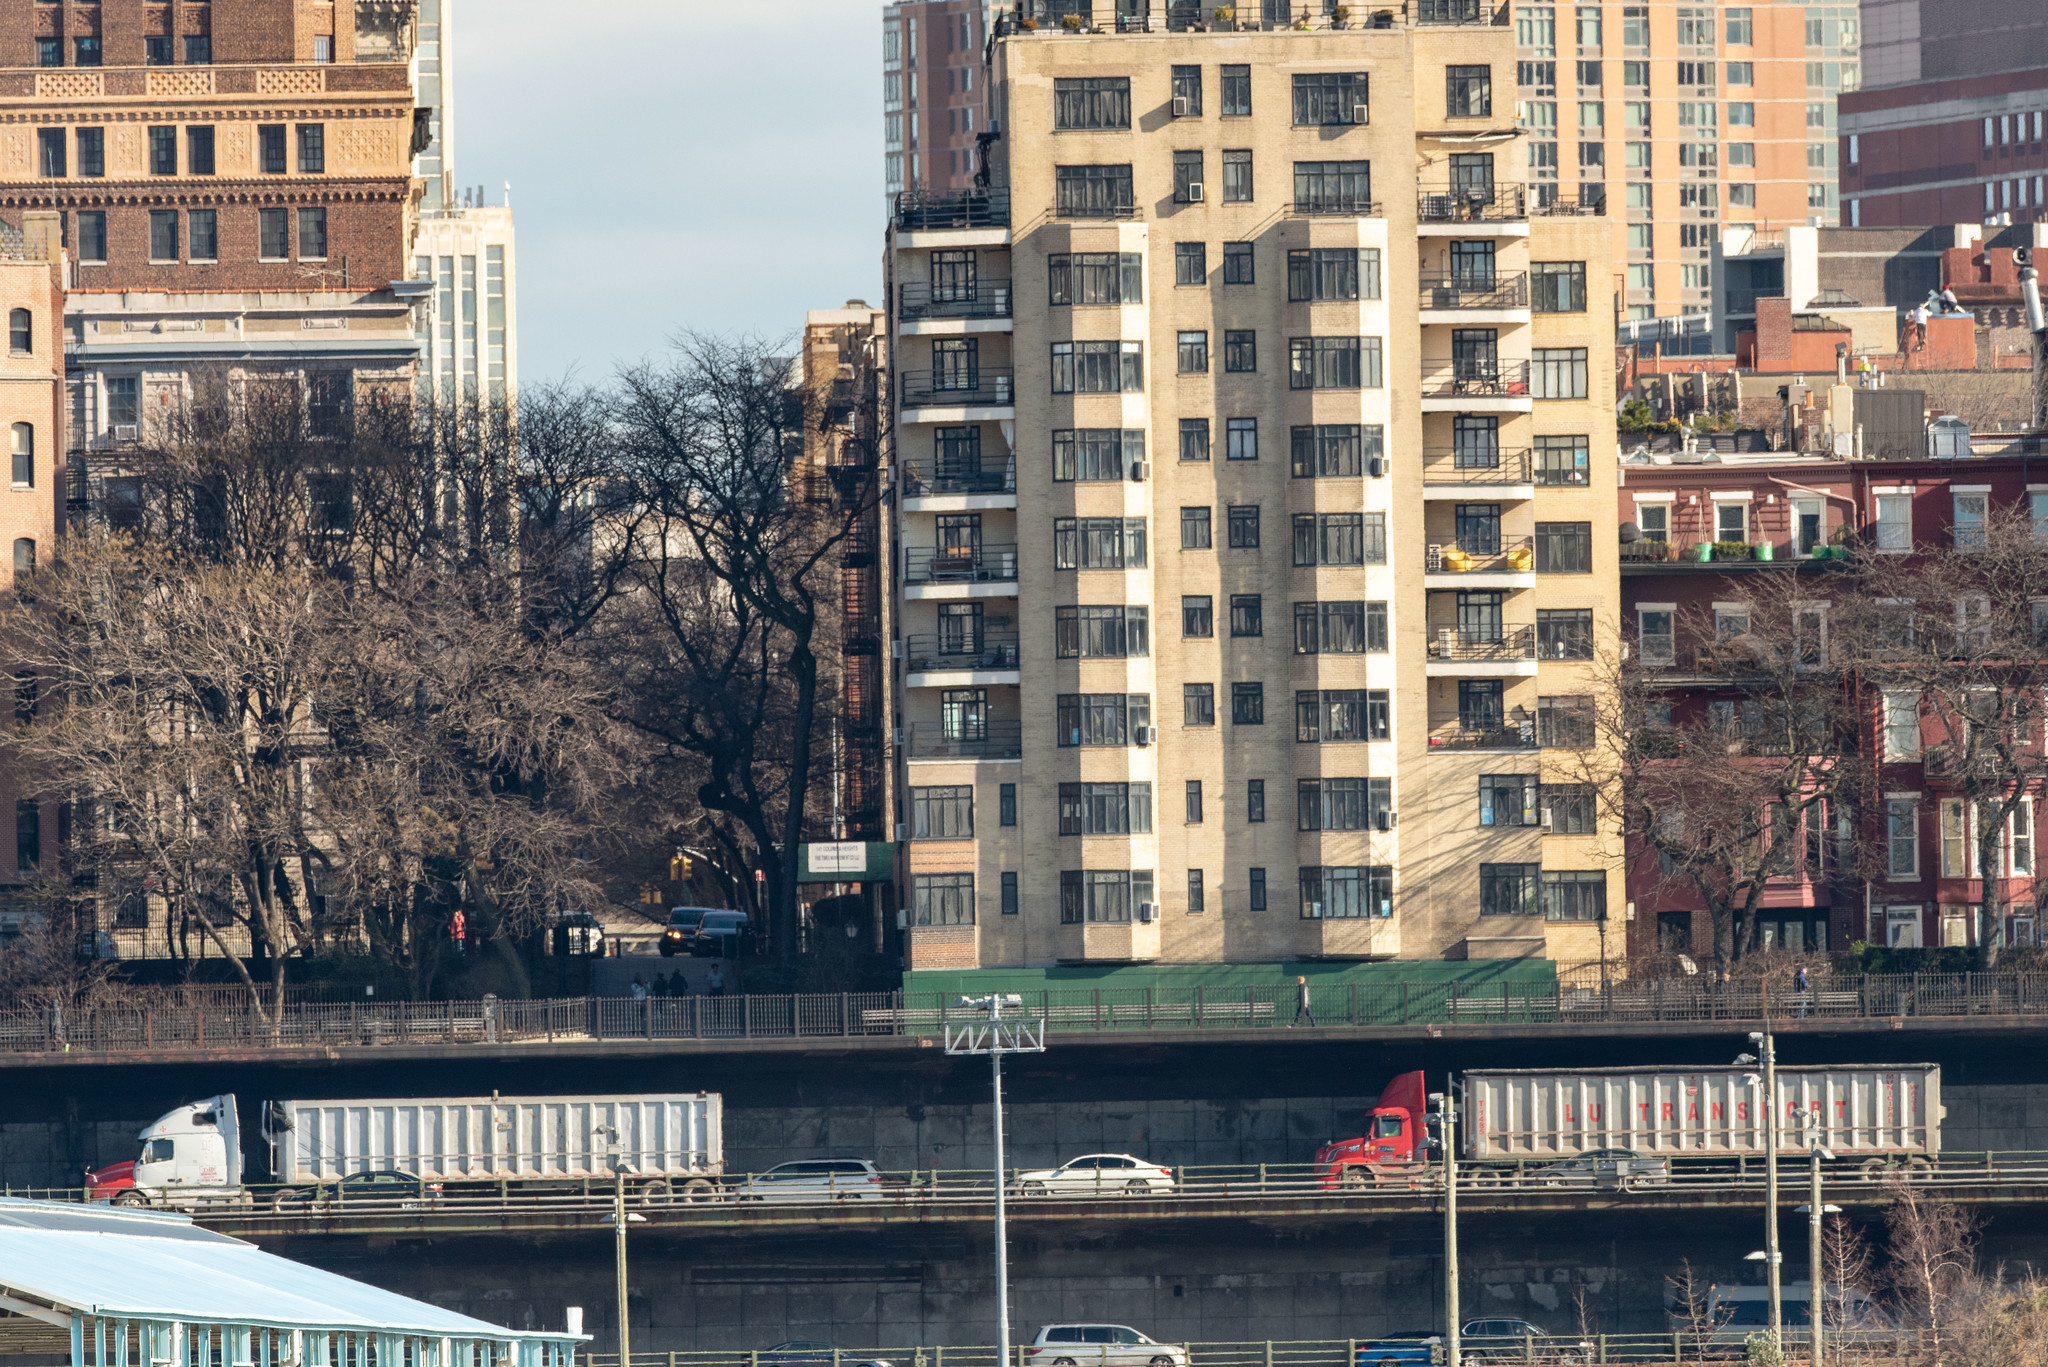 NYC pols want more details of BQE rebuilding plans, including fate of Brooklyn Heights promenade